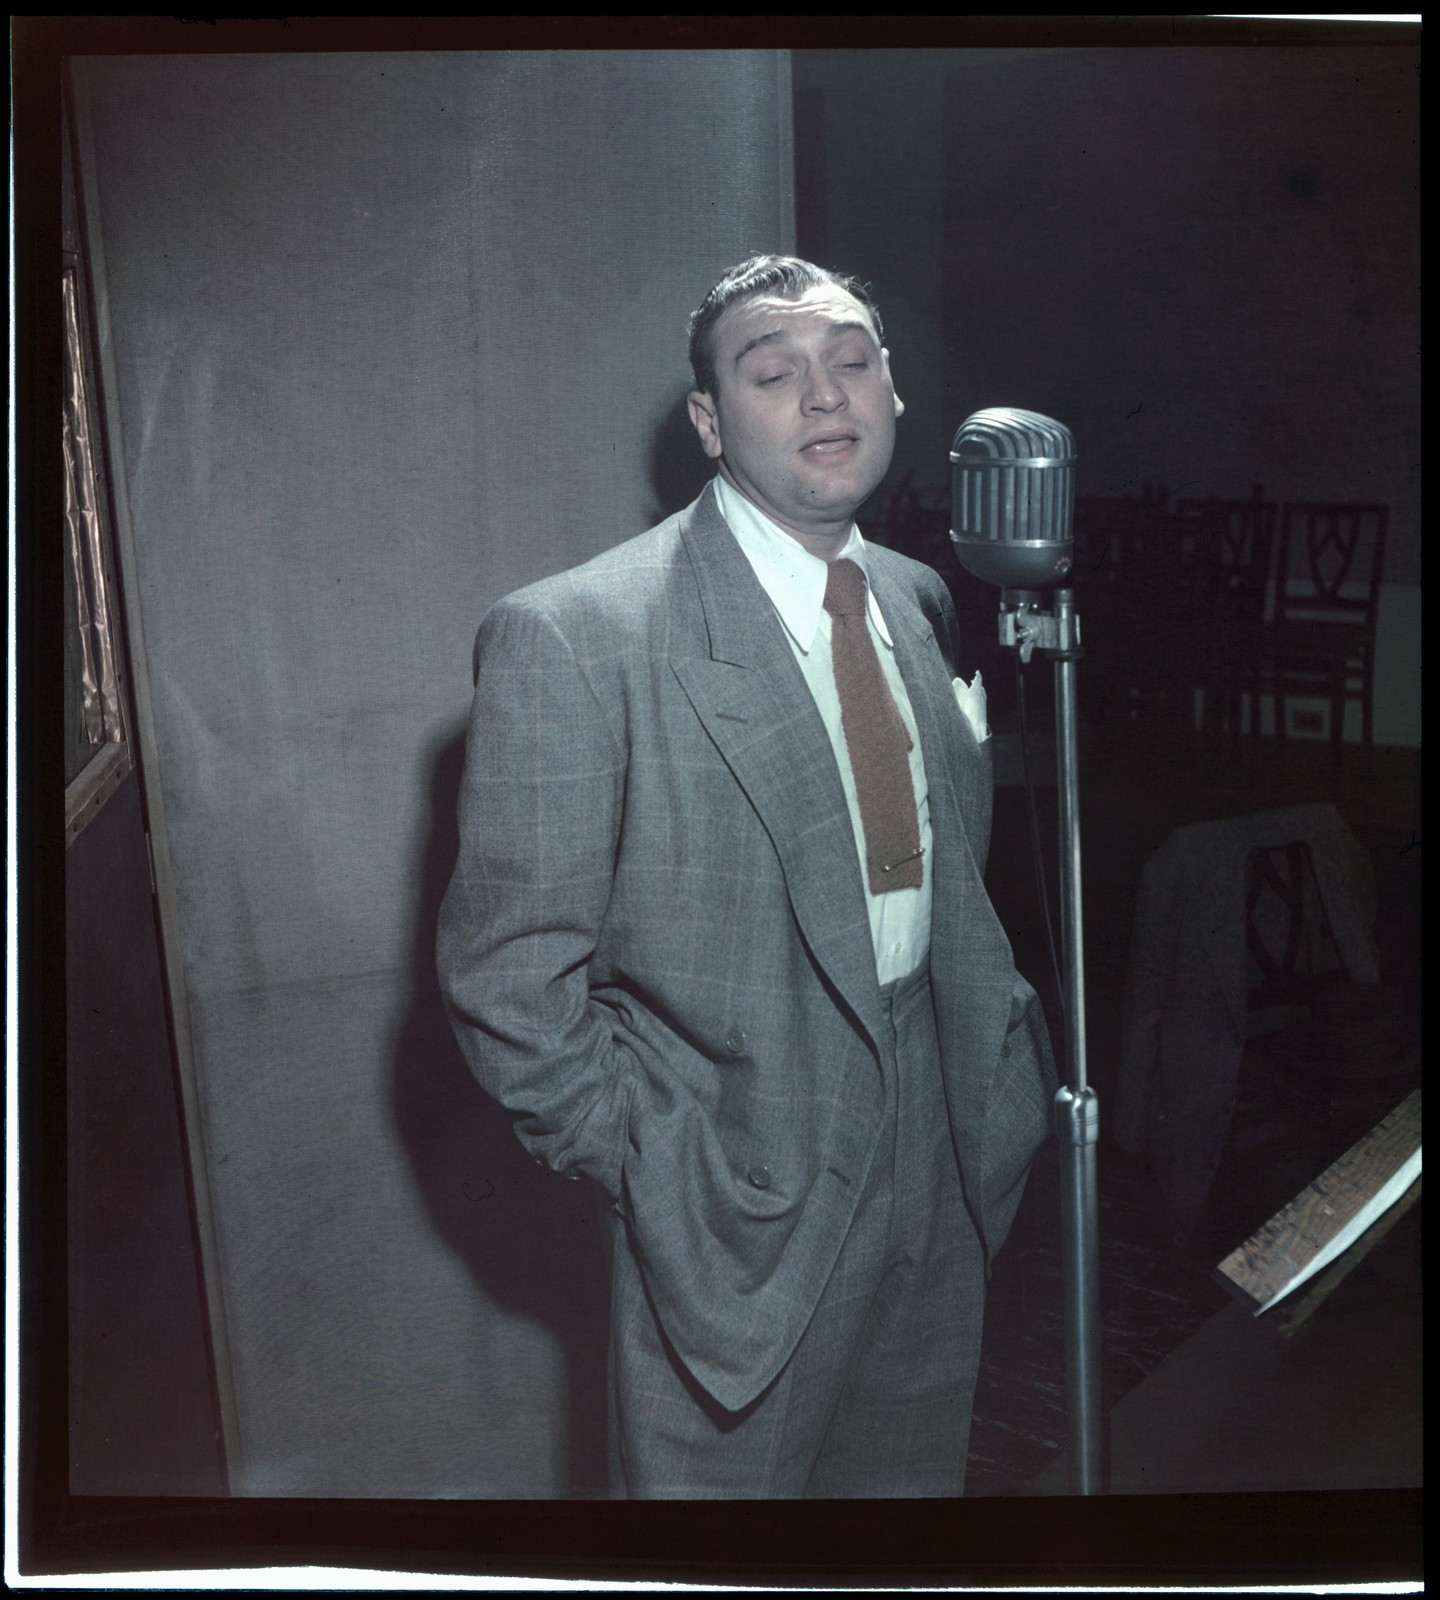 [Portrait of Frankie Laine, New York, N.Y., between 1946 and 1948]